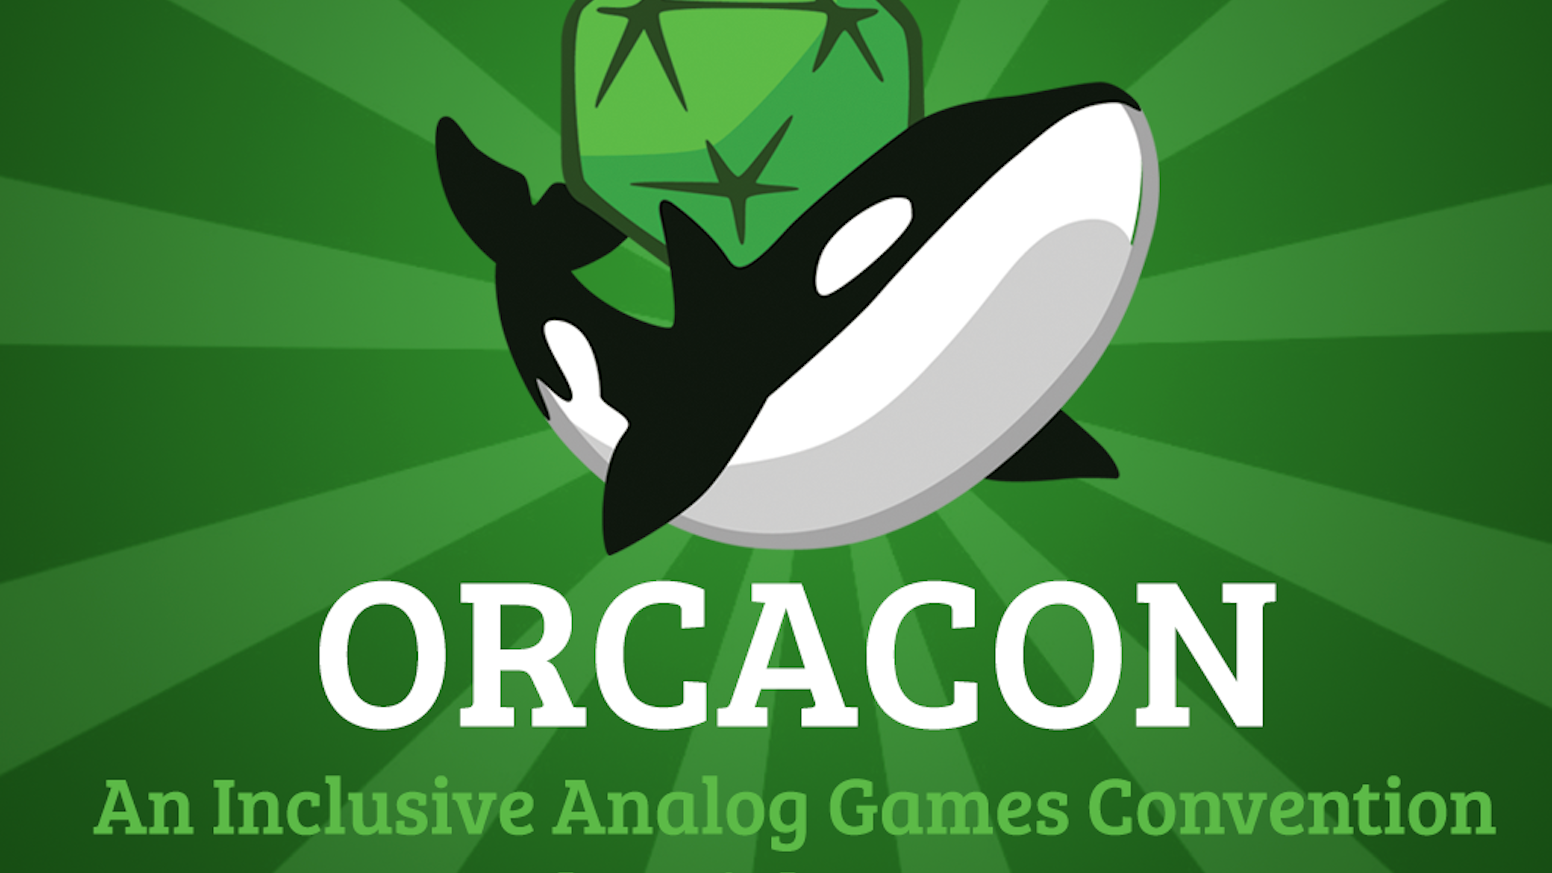 OrcaCon is an inclusive analog game convention in Everett, WA, January 8-10, 2016.